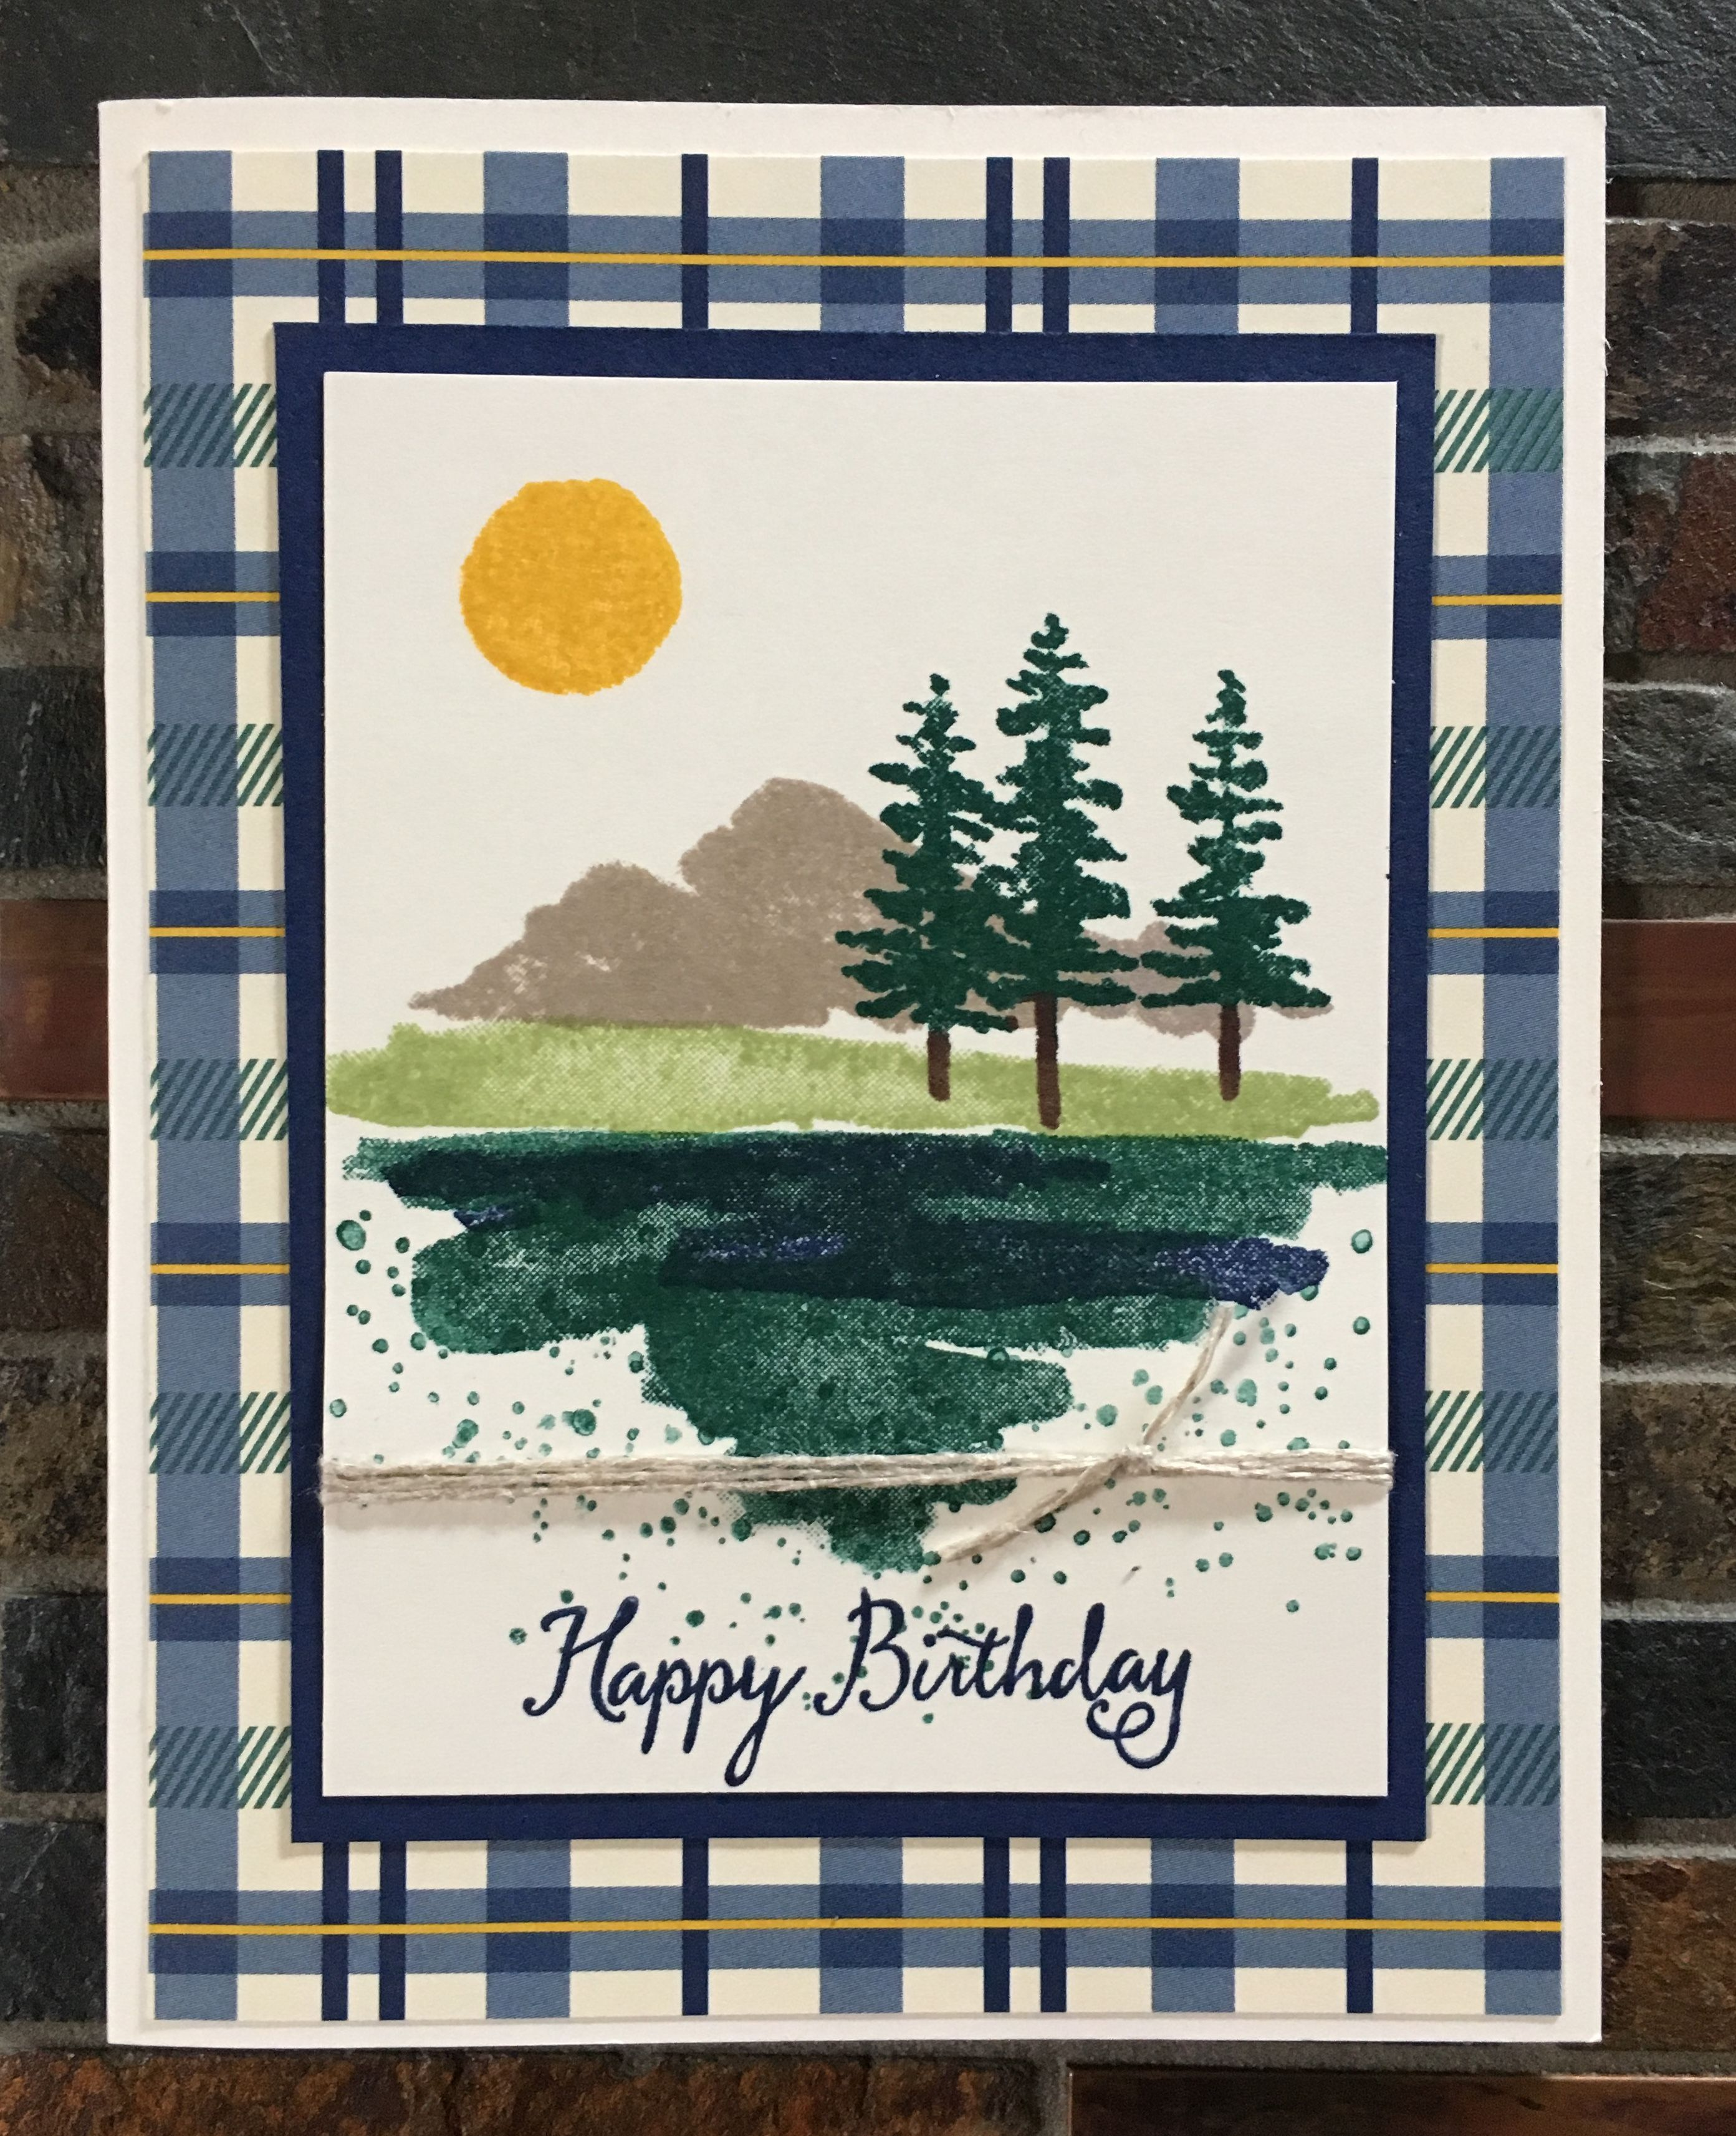 Birthday Card For Mark E Made In Su Class On 1 9 18 9 11 18 Stamping Up Cards Card Art Scene Cards